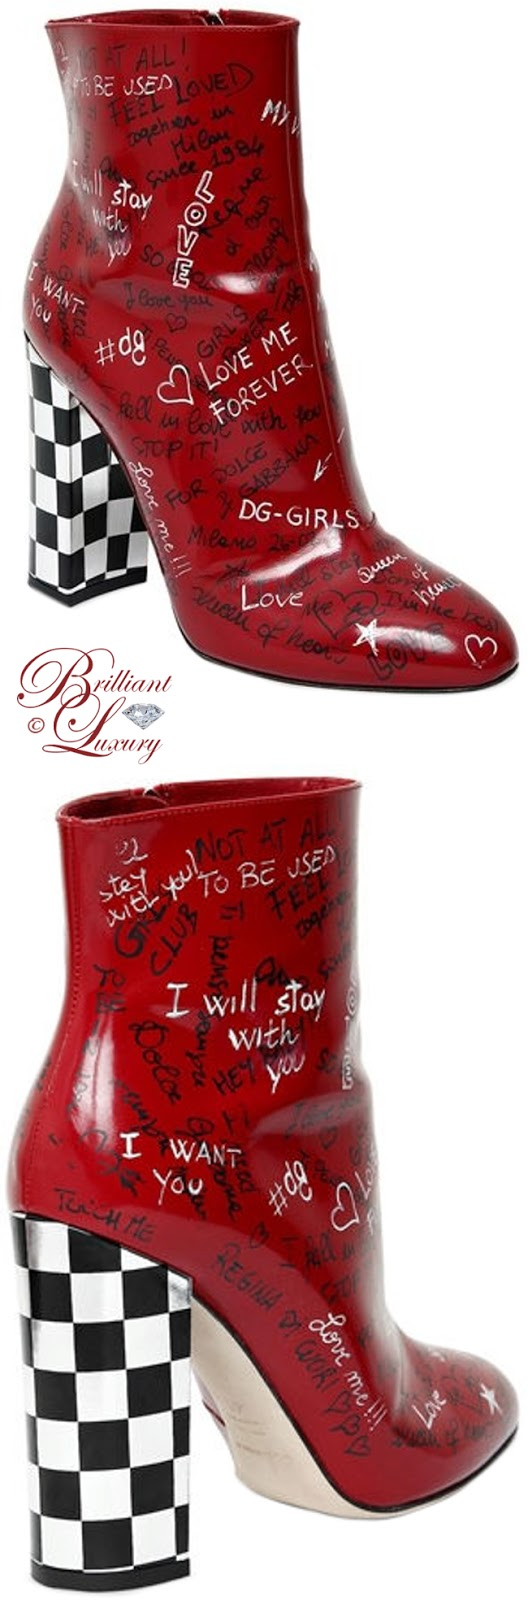 Brilliant Luxury ♦ Dolce & Gabbana Graffiti leather ankle boots